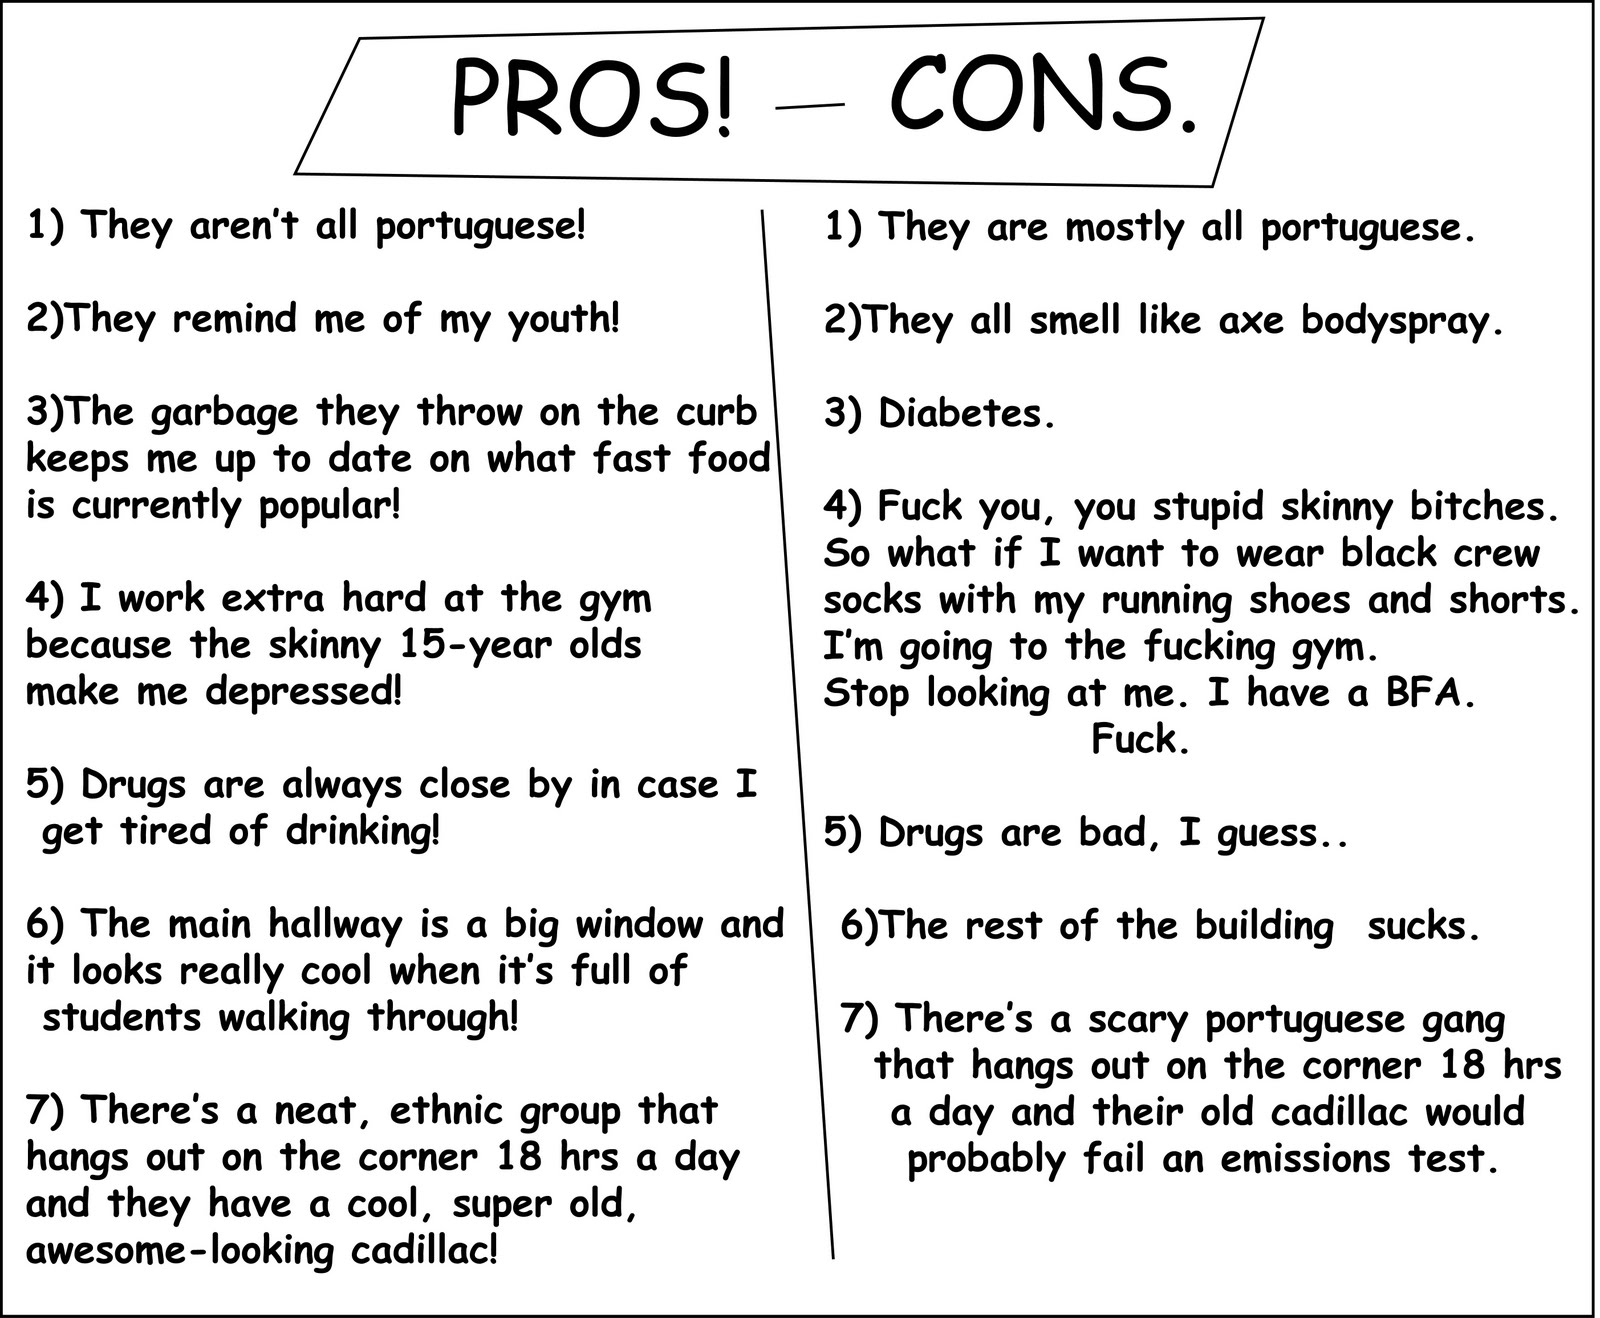 pros and cons of philosophy Disclaimer: this work has been submitted by a student this is not an example of the work written by our professional academic writers you can view samples of our professional work here any opinions, findings, conclusions or recommendations expressed in this material are those of the authors and .